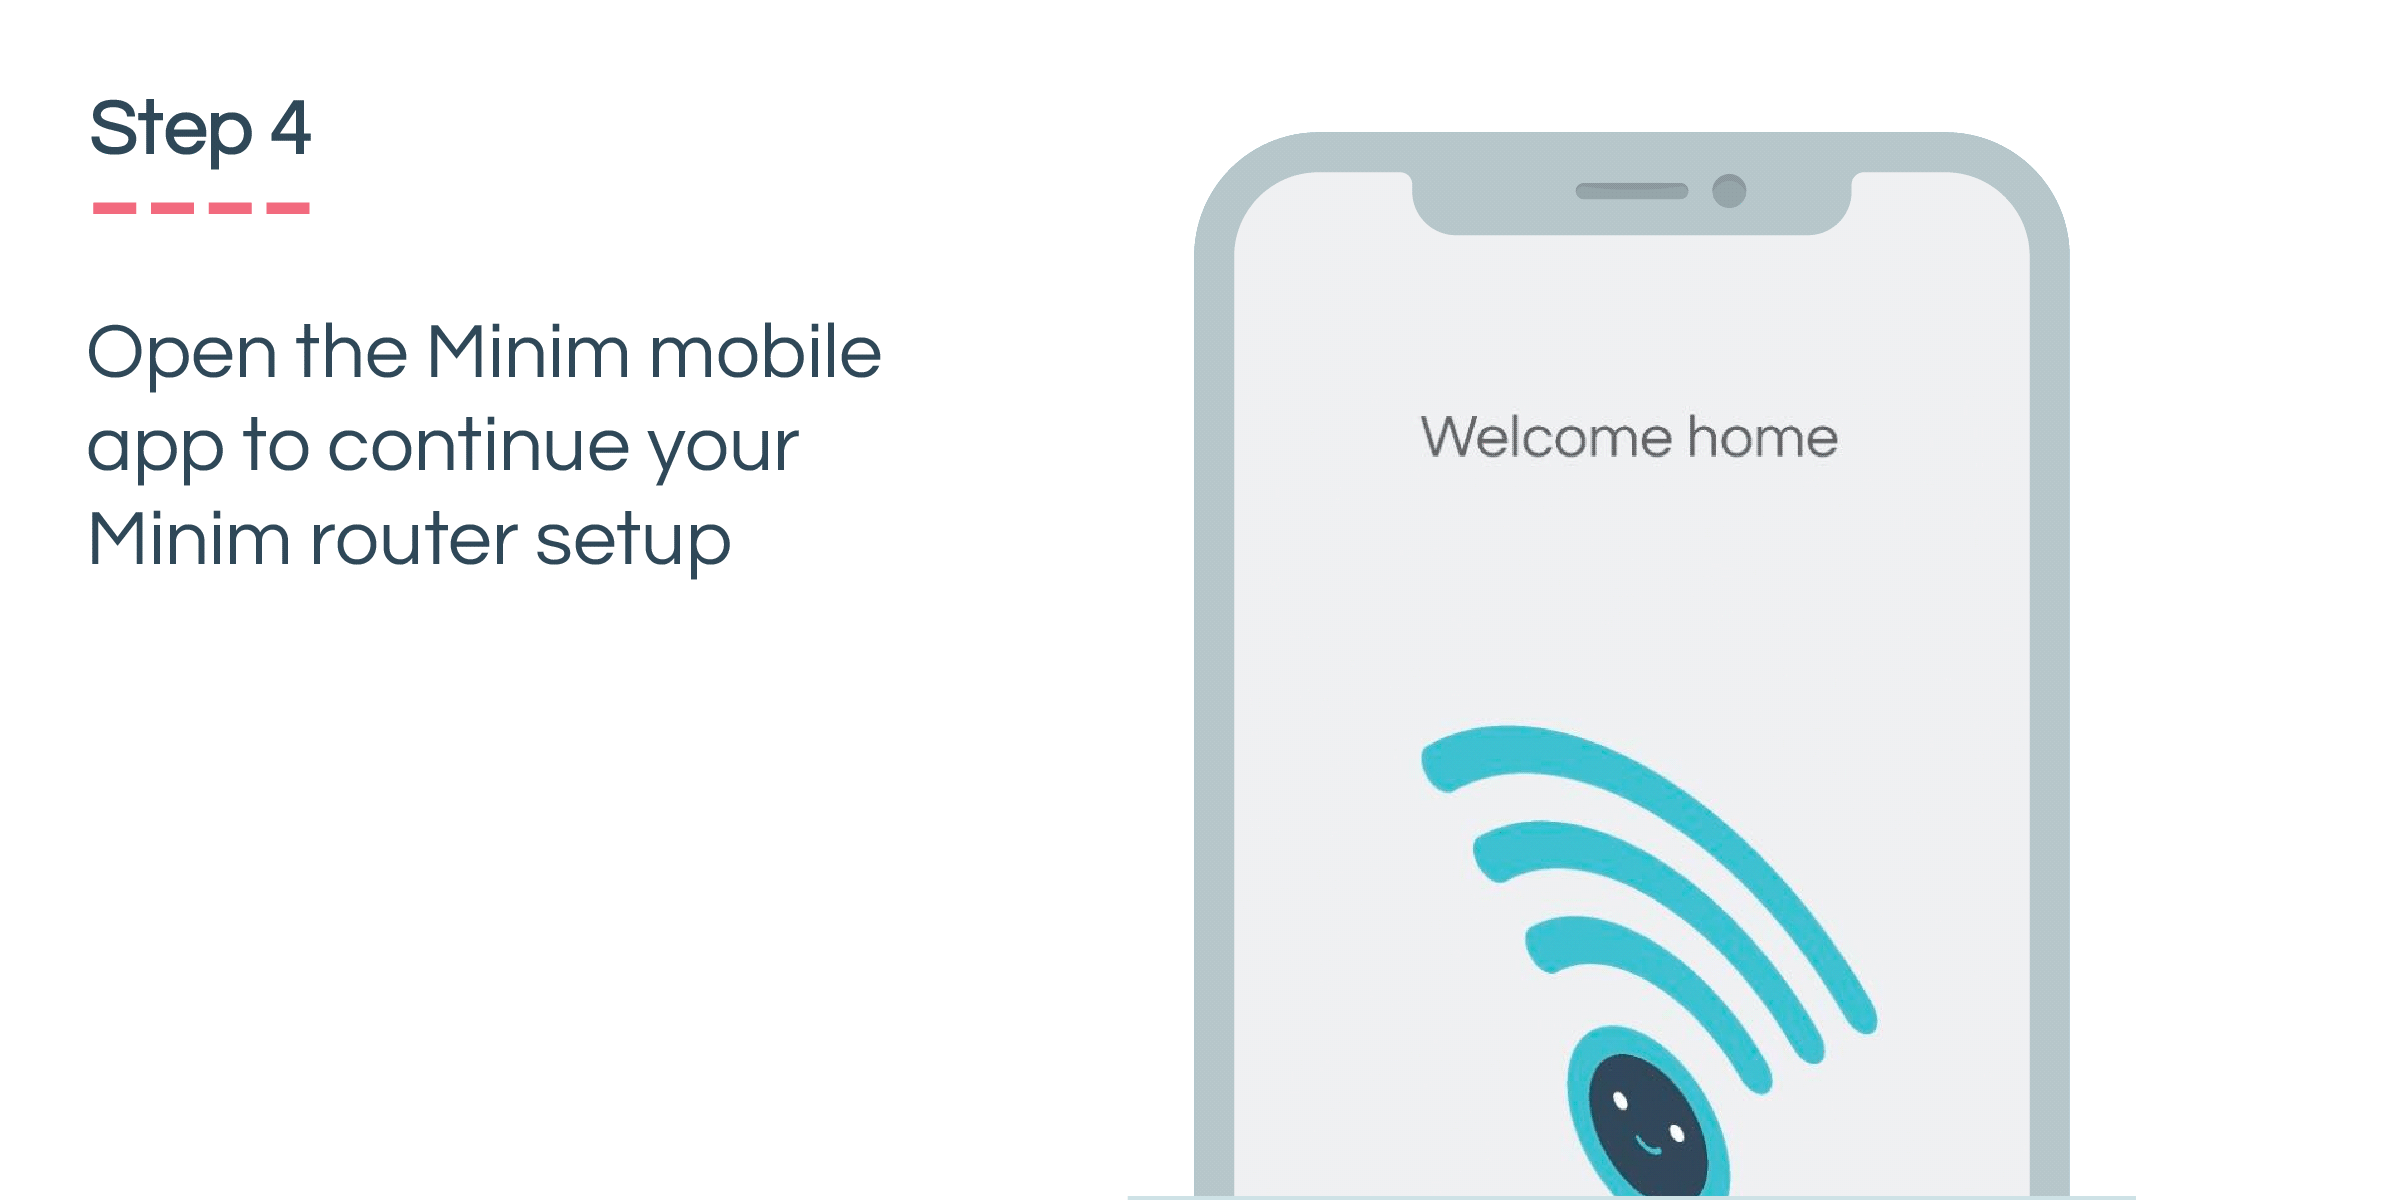 Step 4: Open the Minim mobile app to continue your Minim router setup